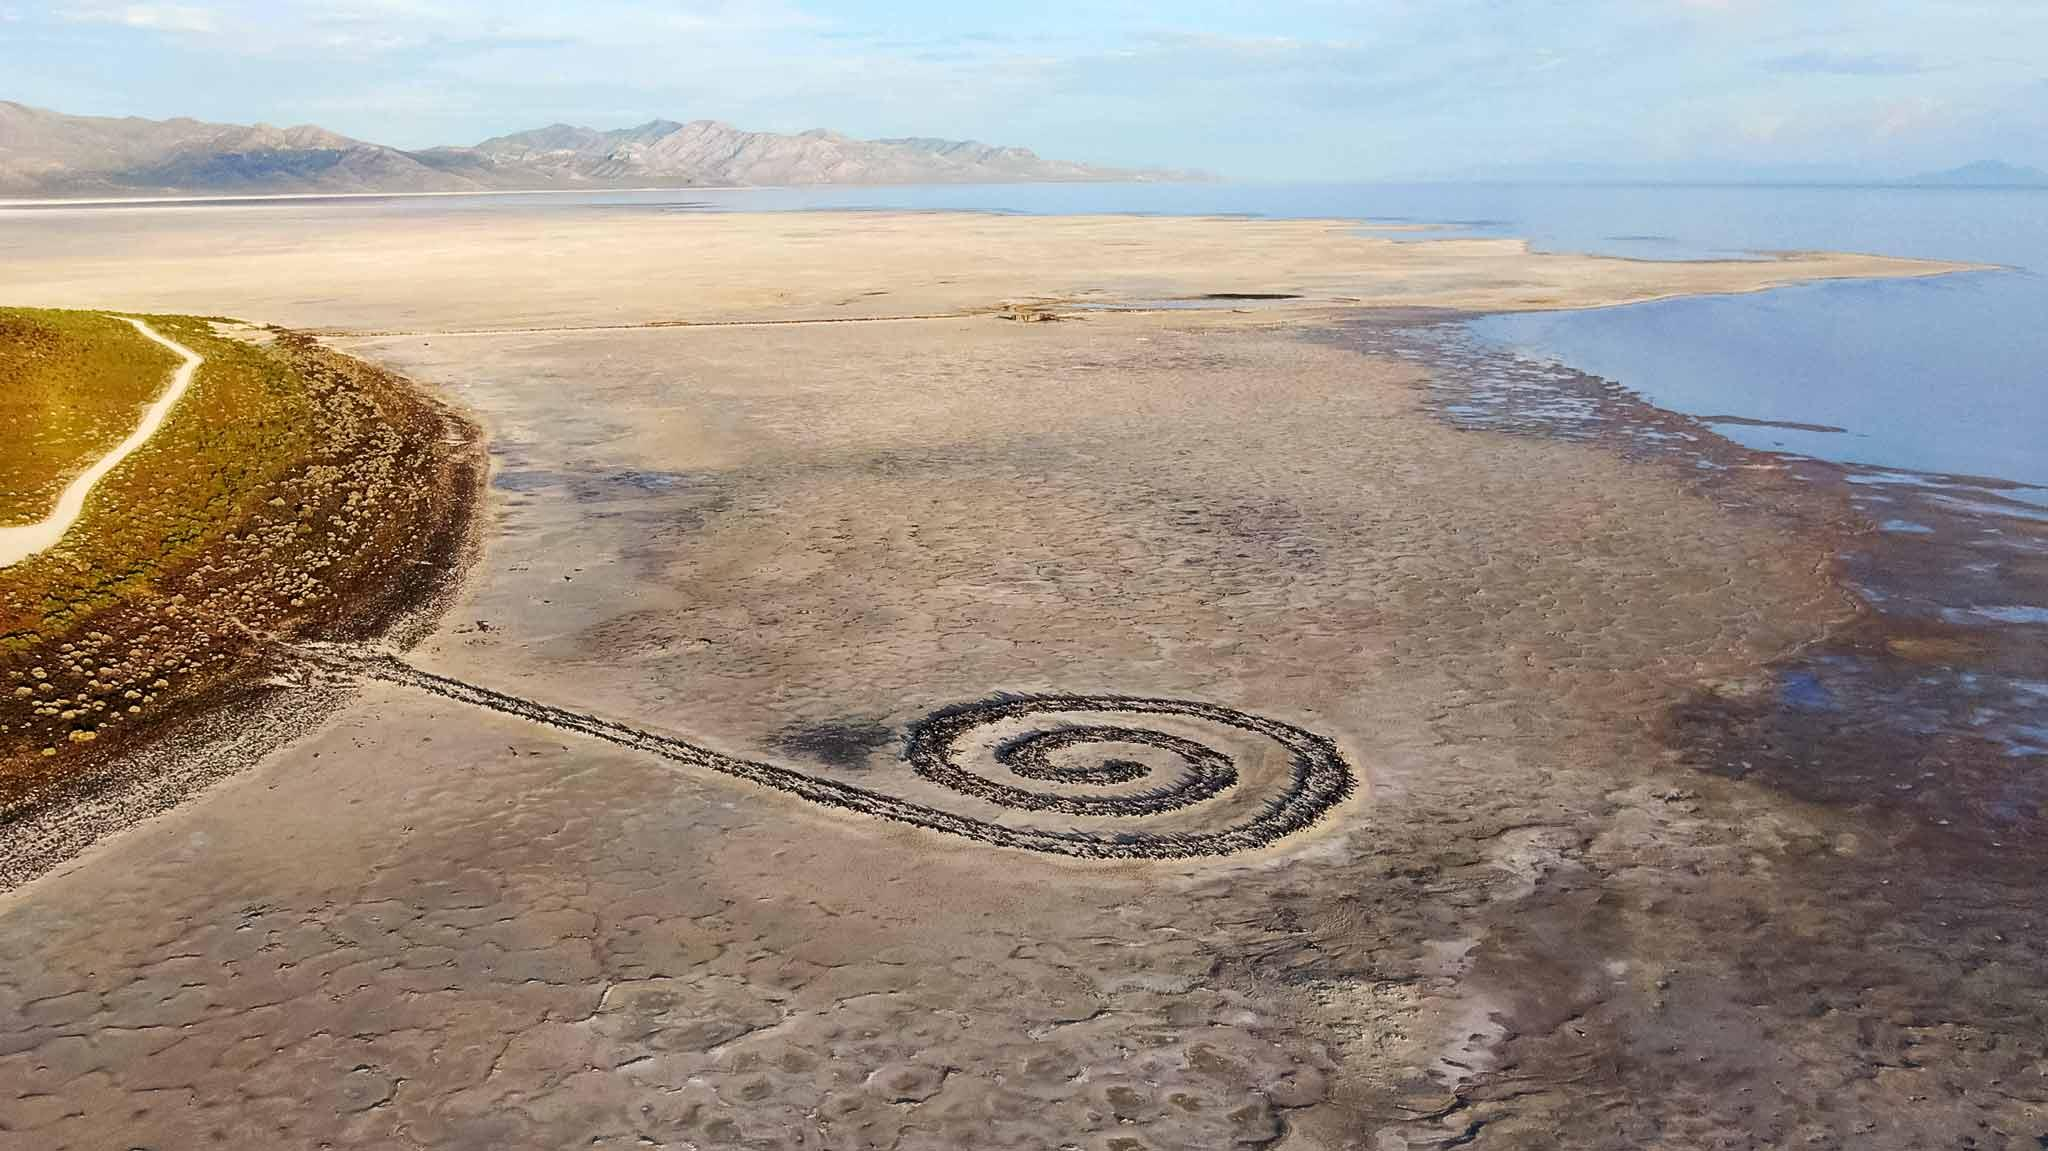 Drone photo of Robert Smithson's Spiral Jetty.